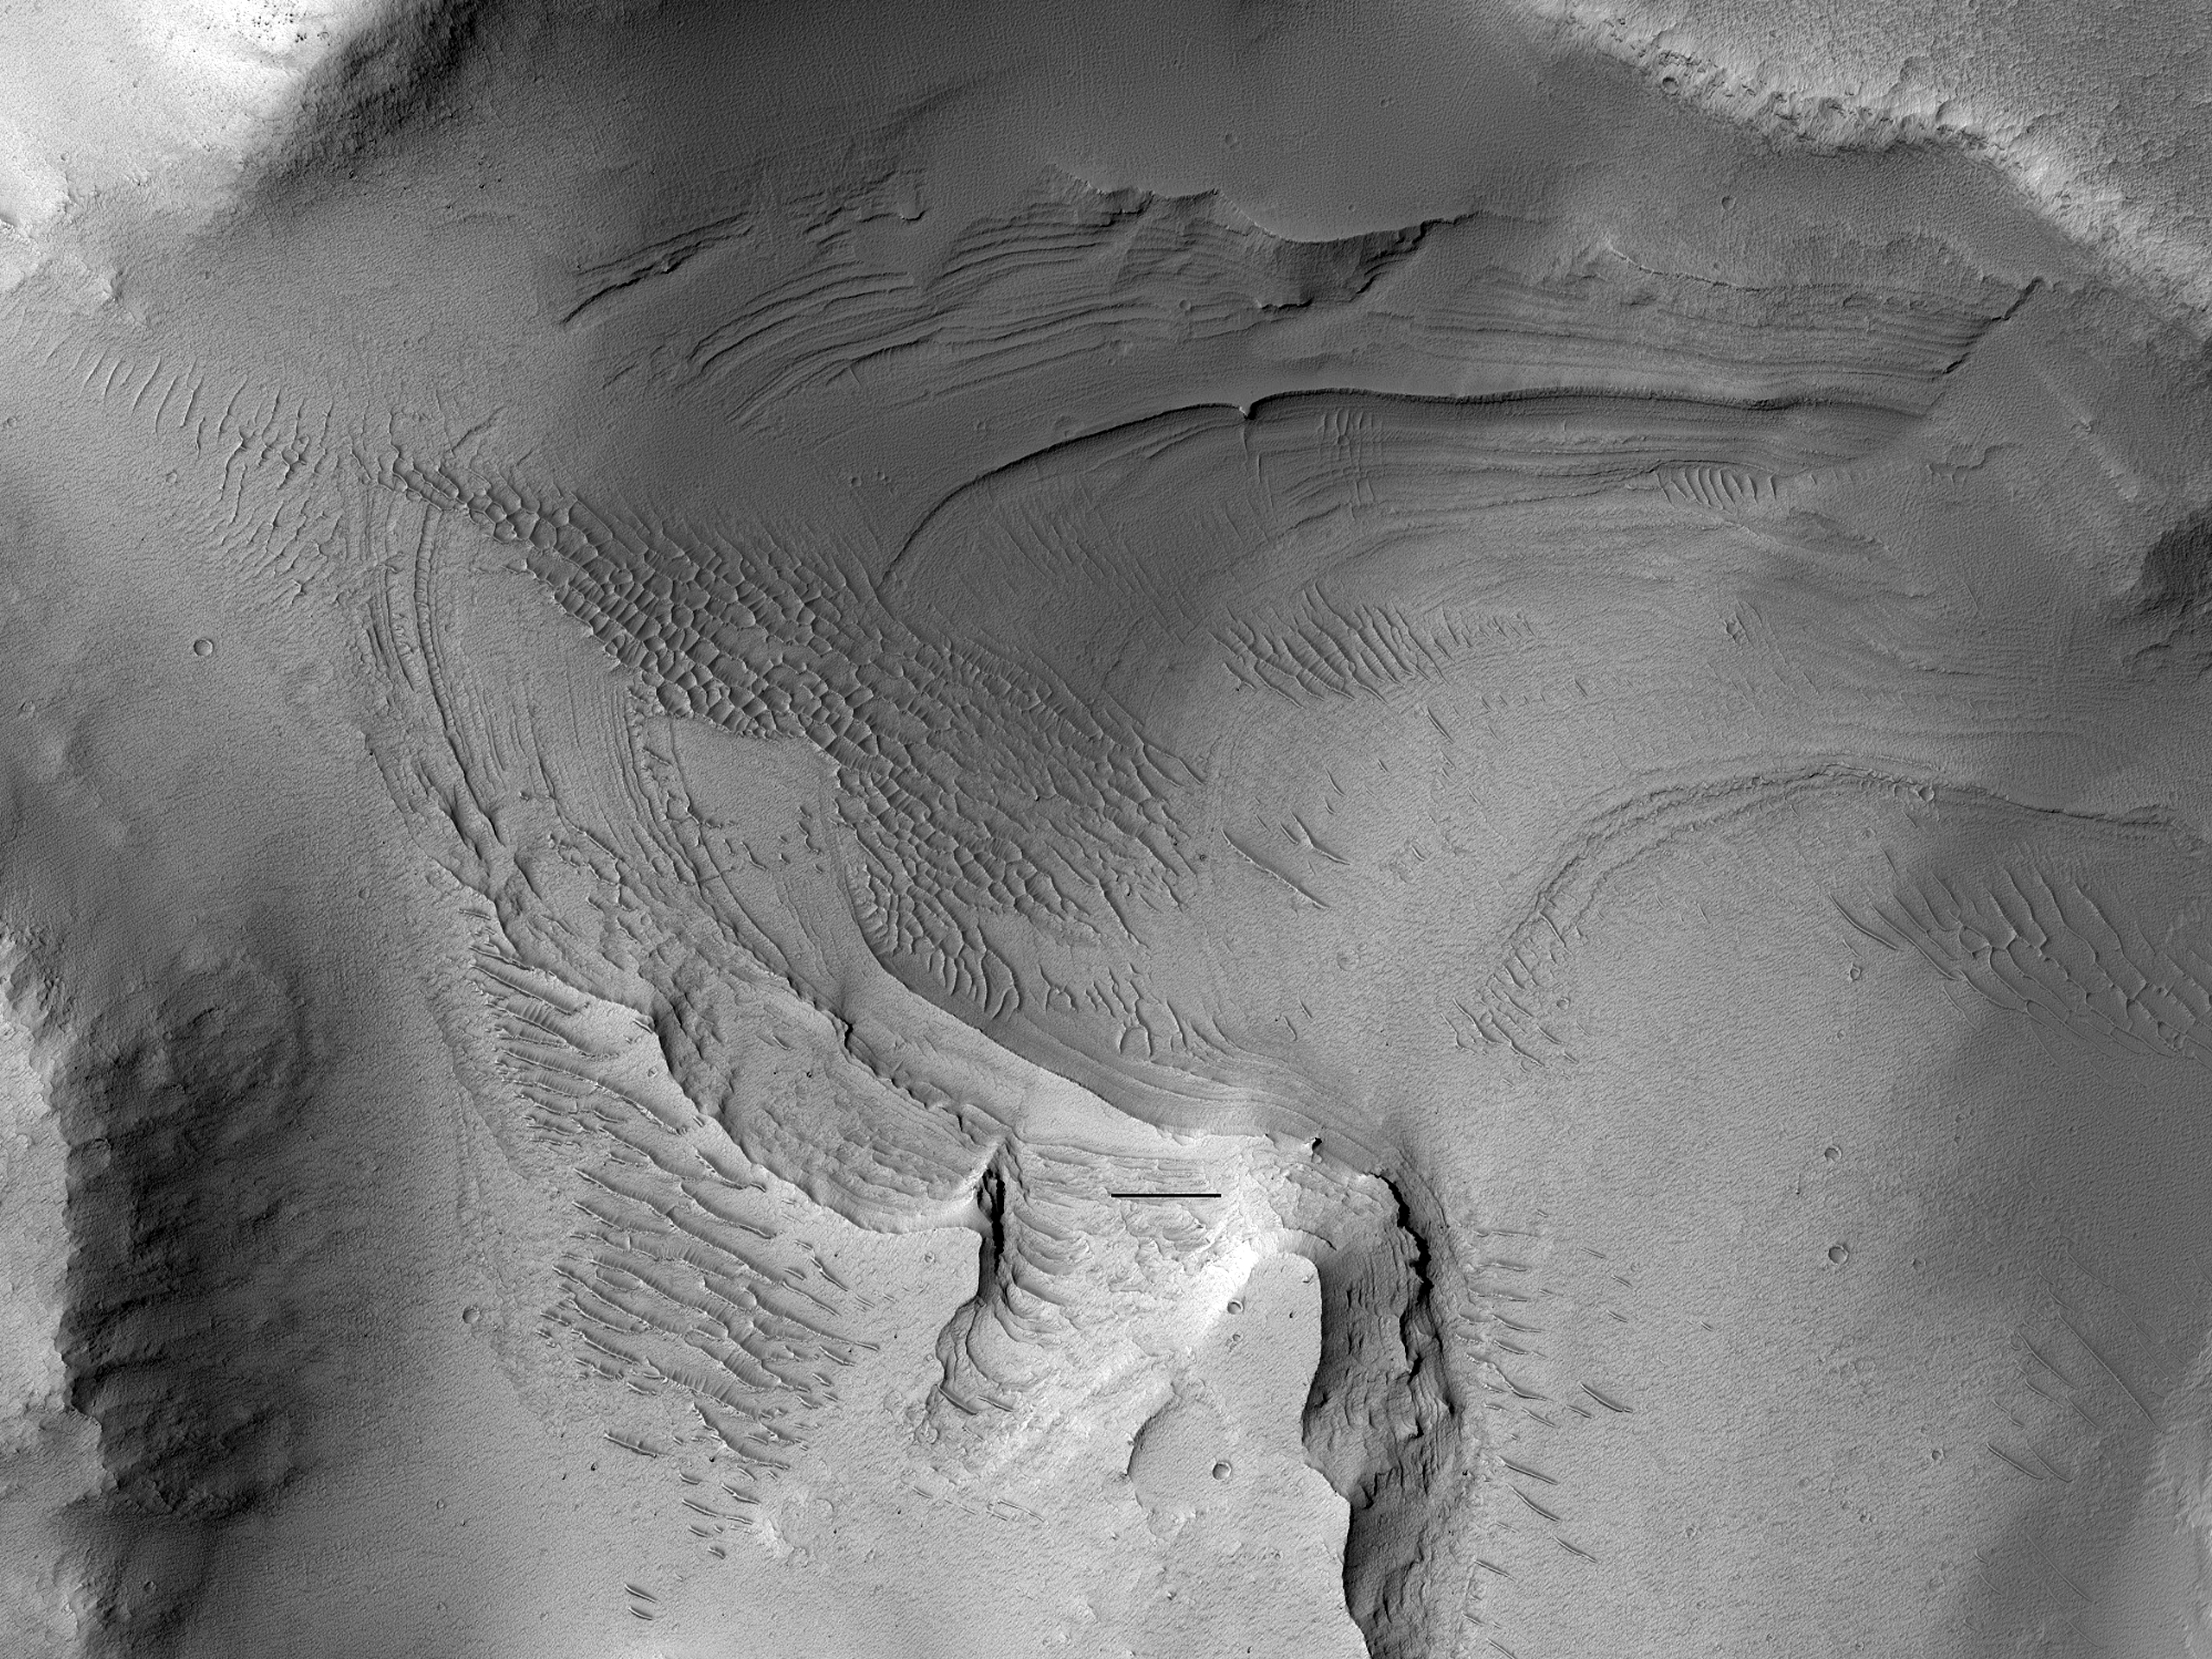 Layered Rock in Noctis Labyrinthus